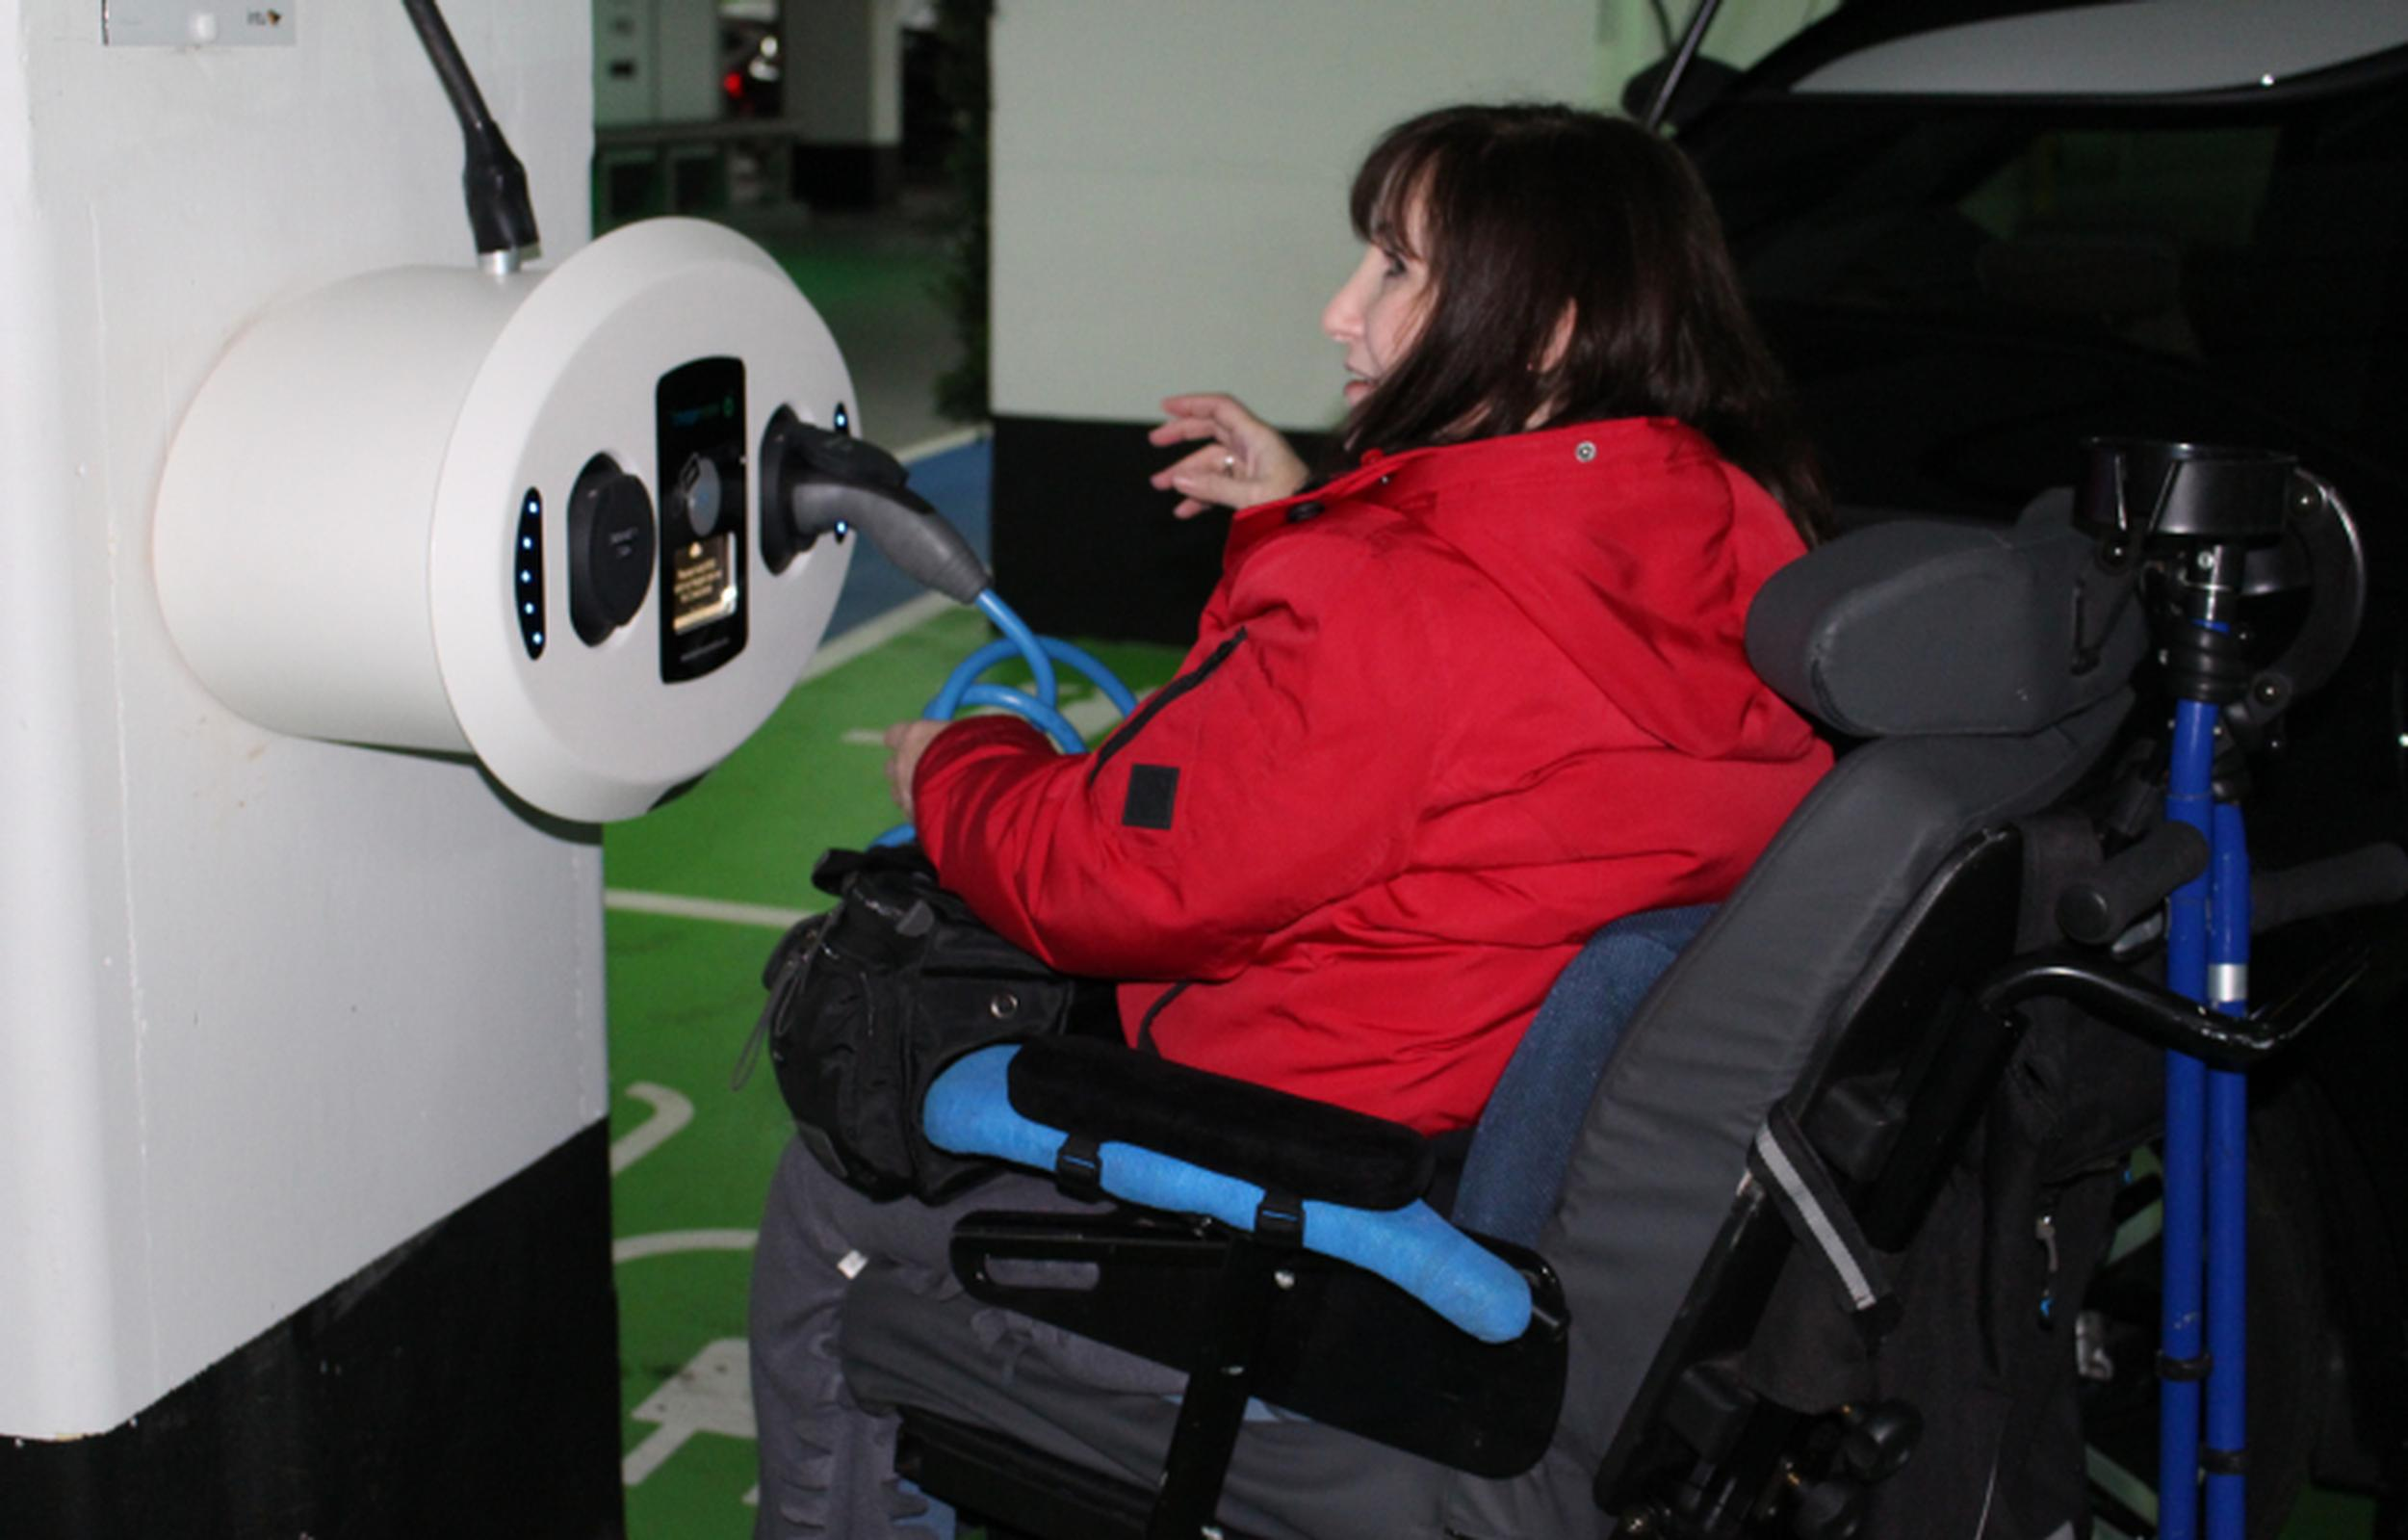 Lack of accessibility across the UK's EV charging infrastructure has been highlighted as a key problem area